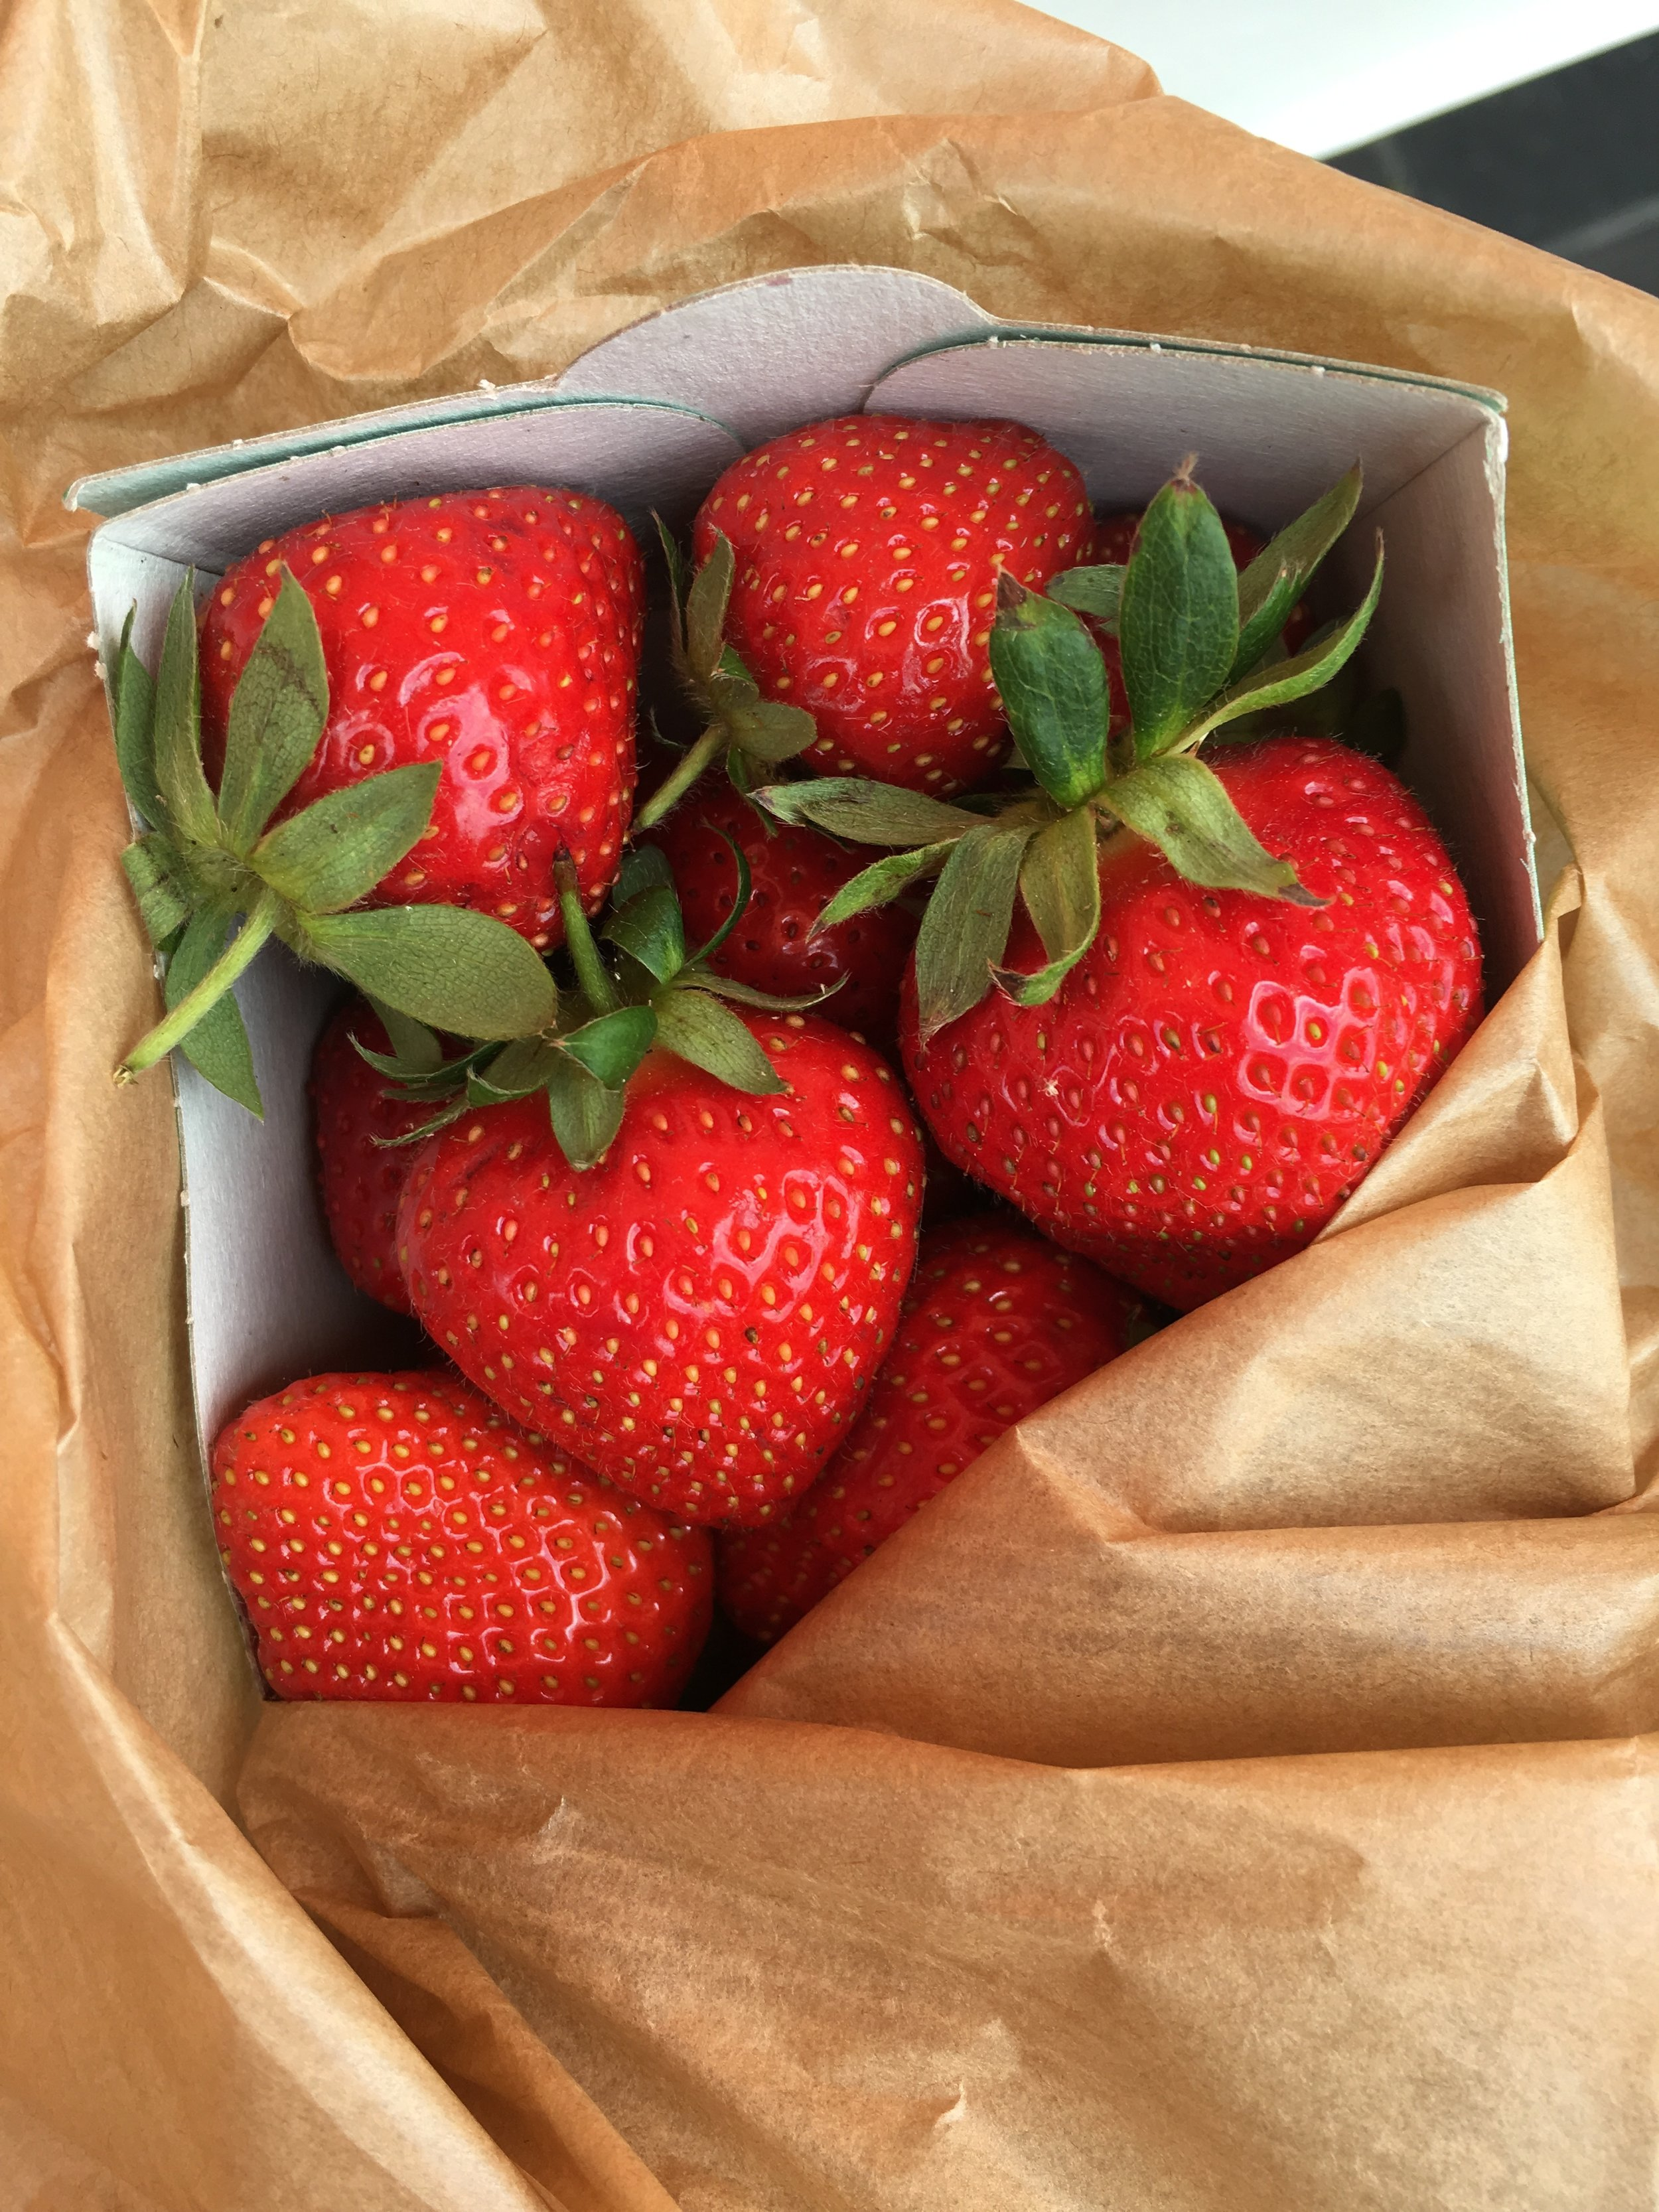 strawberries in nice france everyday parisian summer in the south of france